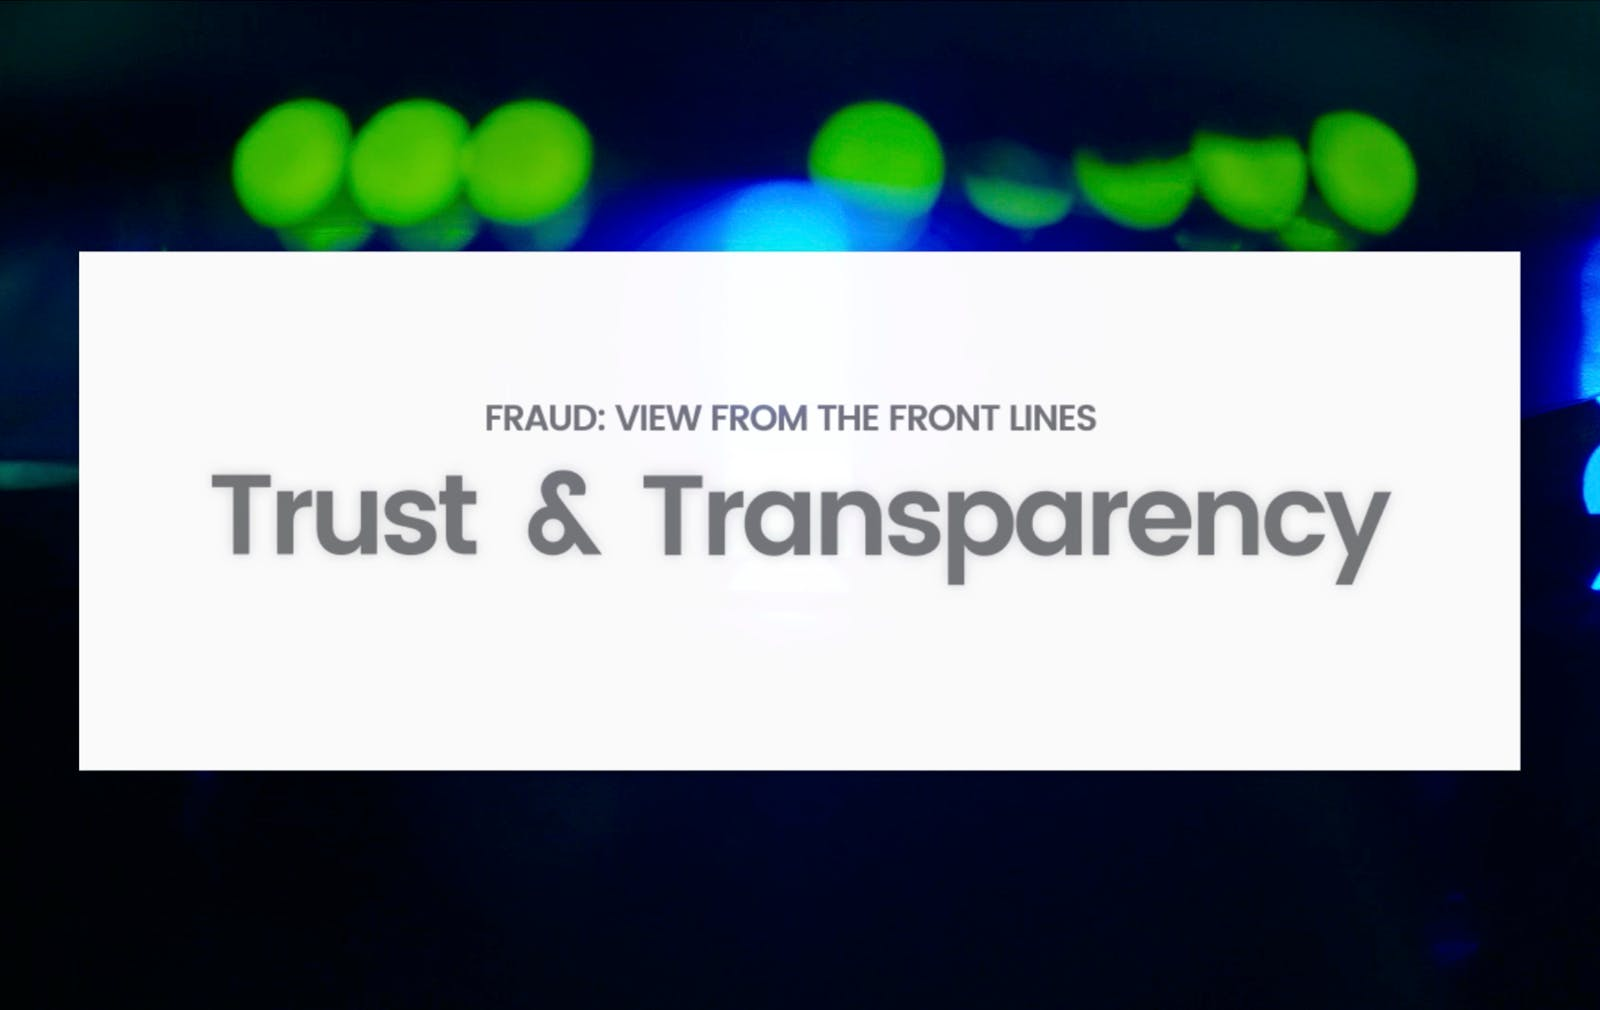 Fraud: View from the Front Lines – Trust & Transparency